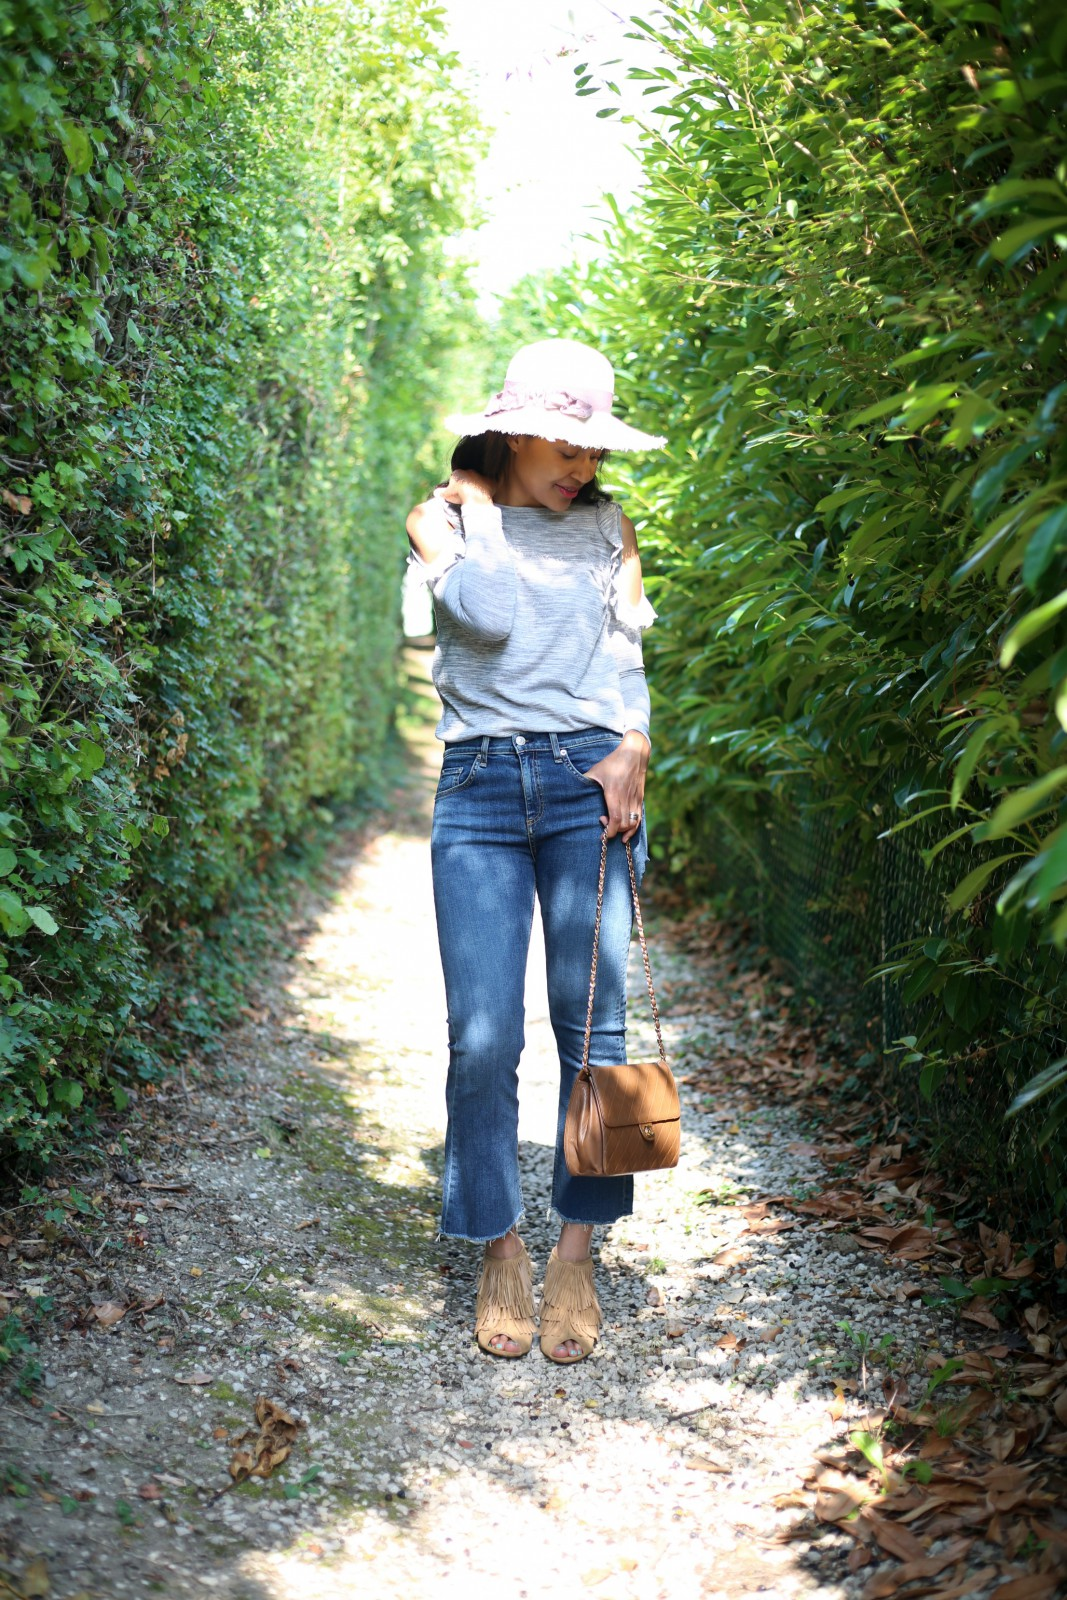 Cropped jeans _flare jeans/distressed hem jeans